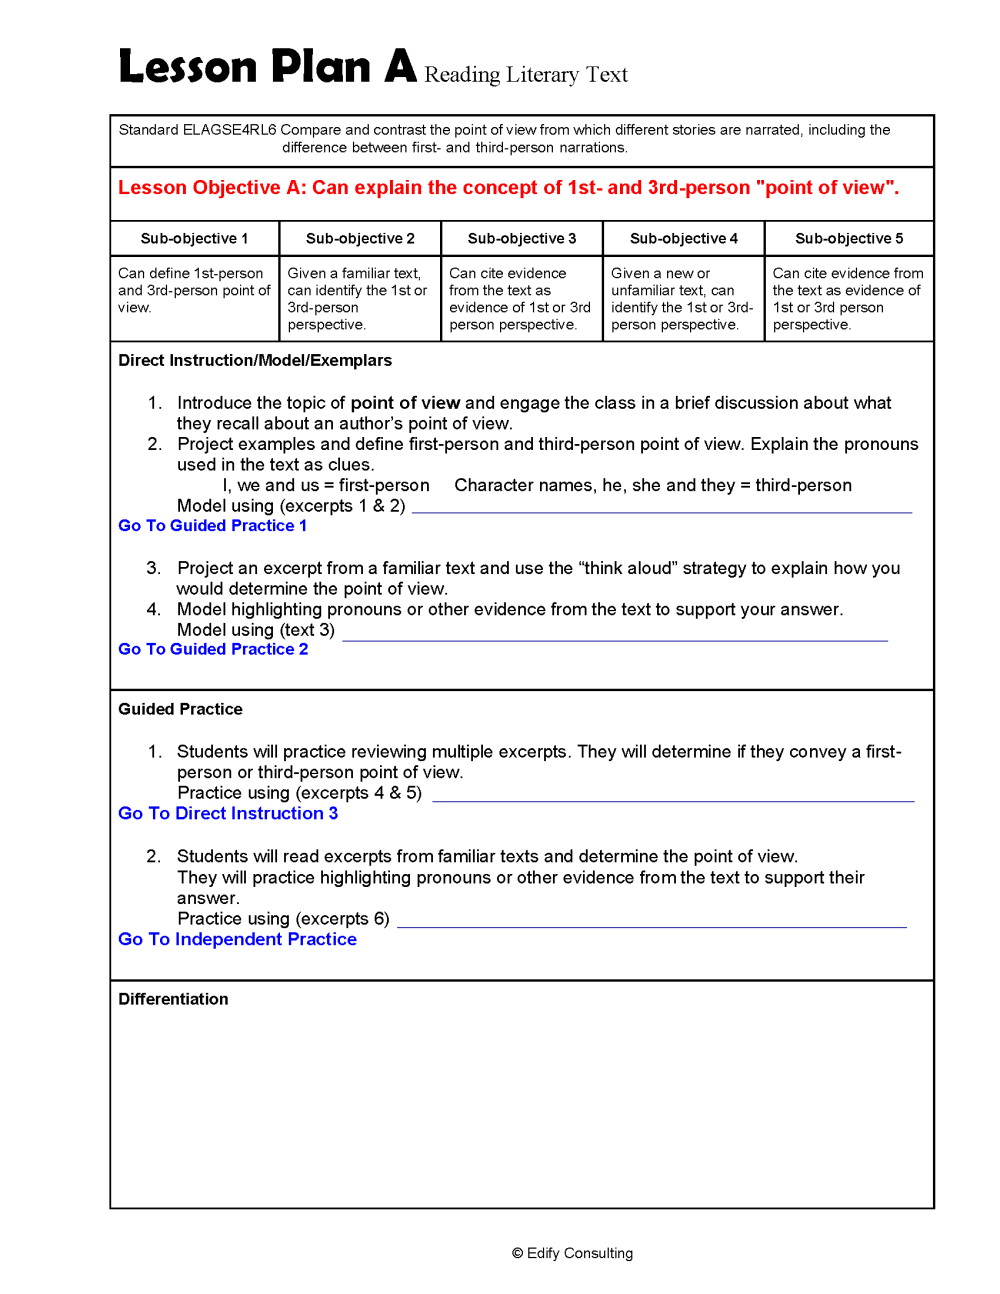 medium resolution of Georgia Lesson Plans ELAGSE4RL6 – ELA 4th Grade (2 Lesson Plans) –  ShopDollar.com: Online Shopping for Teachers Saving on Classroom Supplies